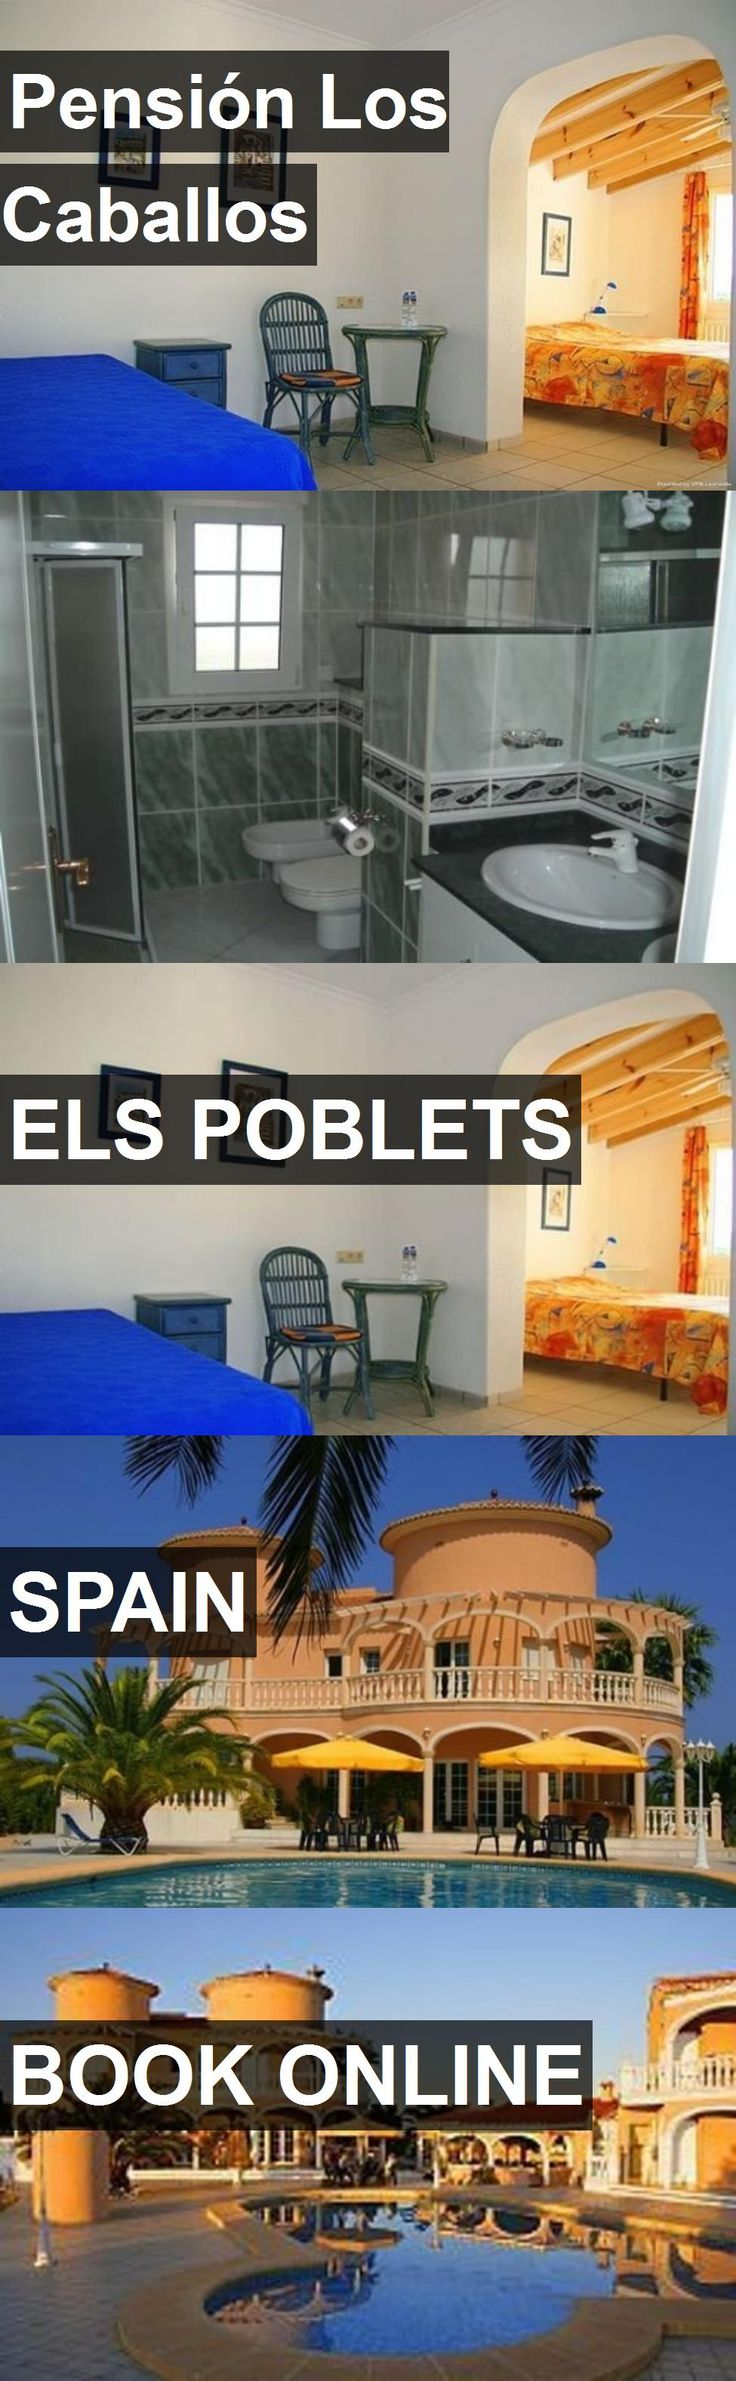 Hotel Pensión Los Caballos in Els Poblets, Spain. For more information, photos, reviews and best prices please follow the link. #Spain #ElsPoblets #travel #vacation #hotel